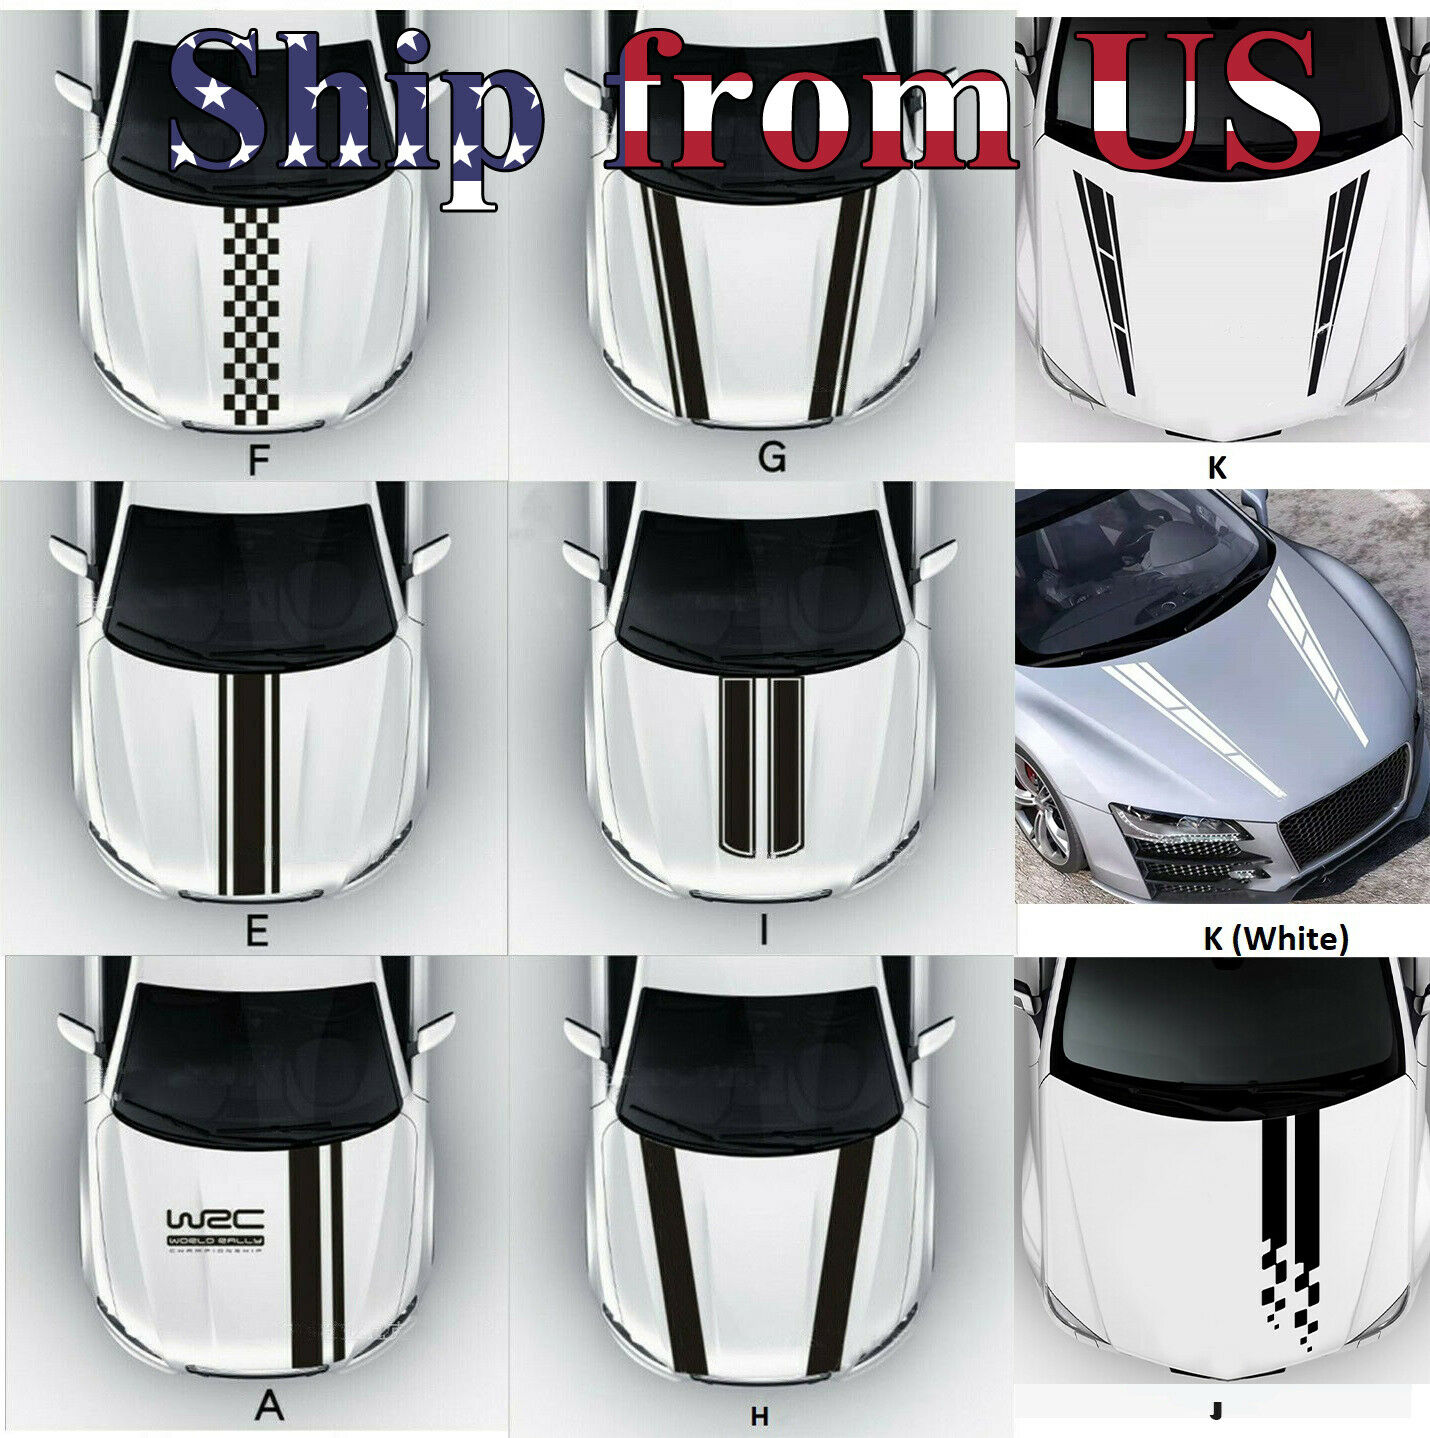 Racing Hood Stripes Decal Vinyl Stickers for Car SUV Truck Universal Fit